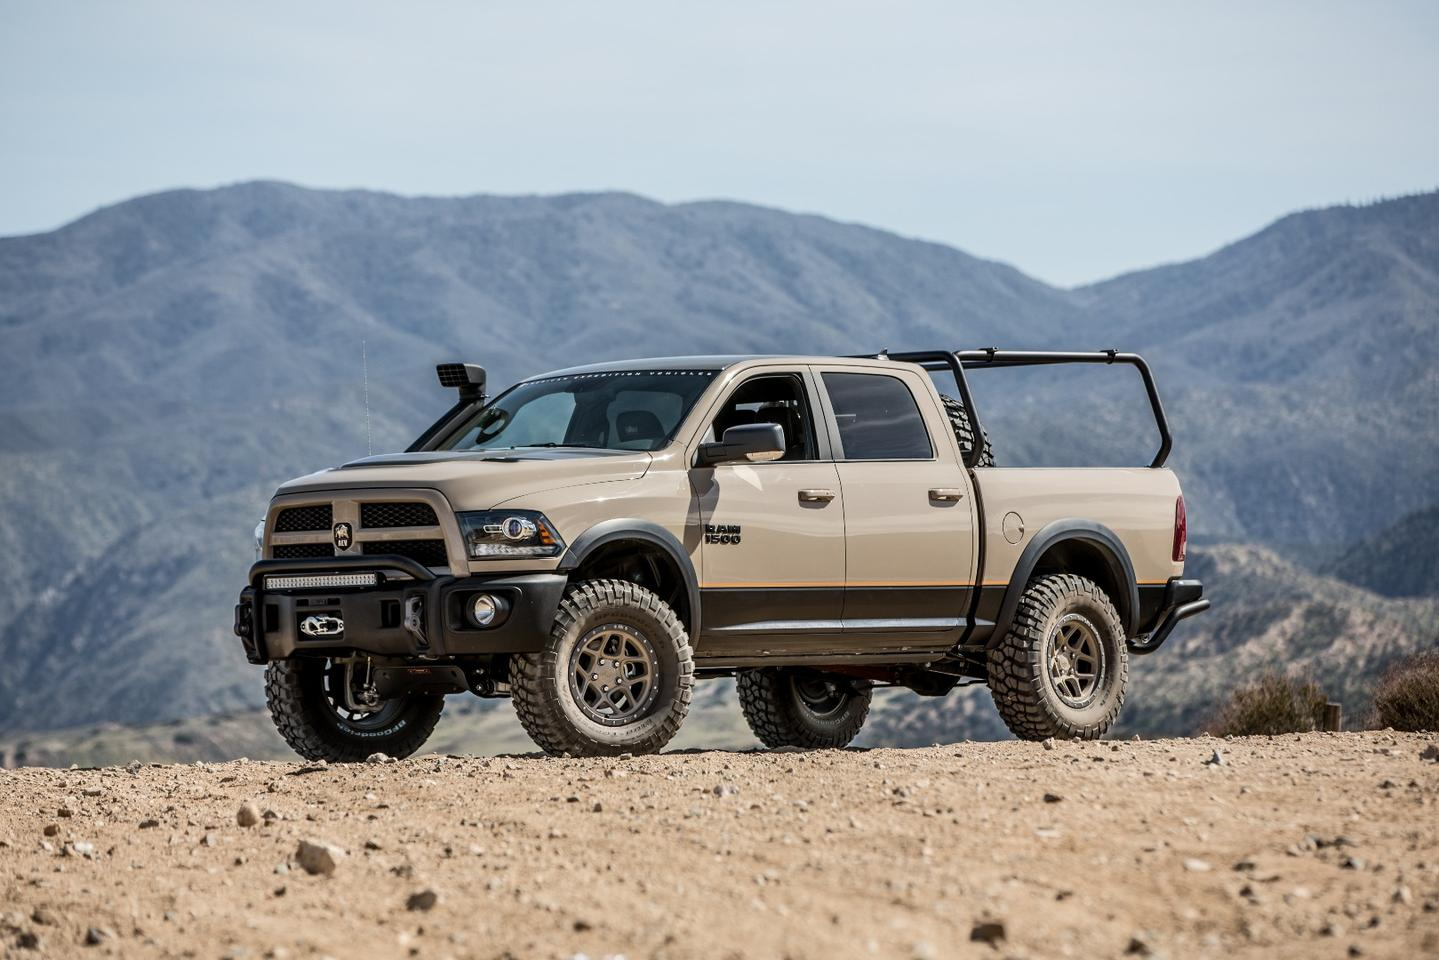 AEVhas created the Recruit package to add some off-road chops to the 1500's everyday driving capabilities